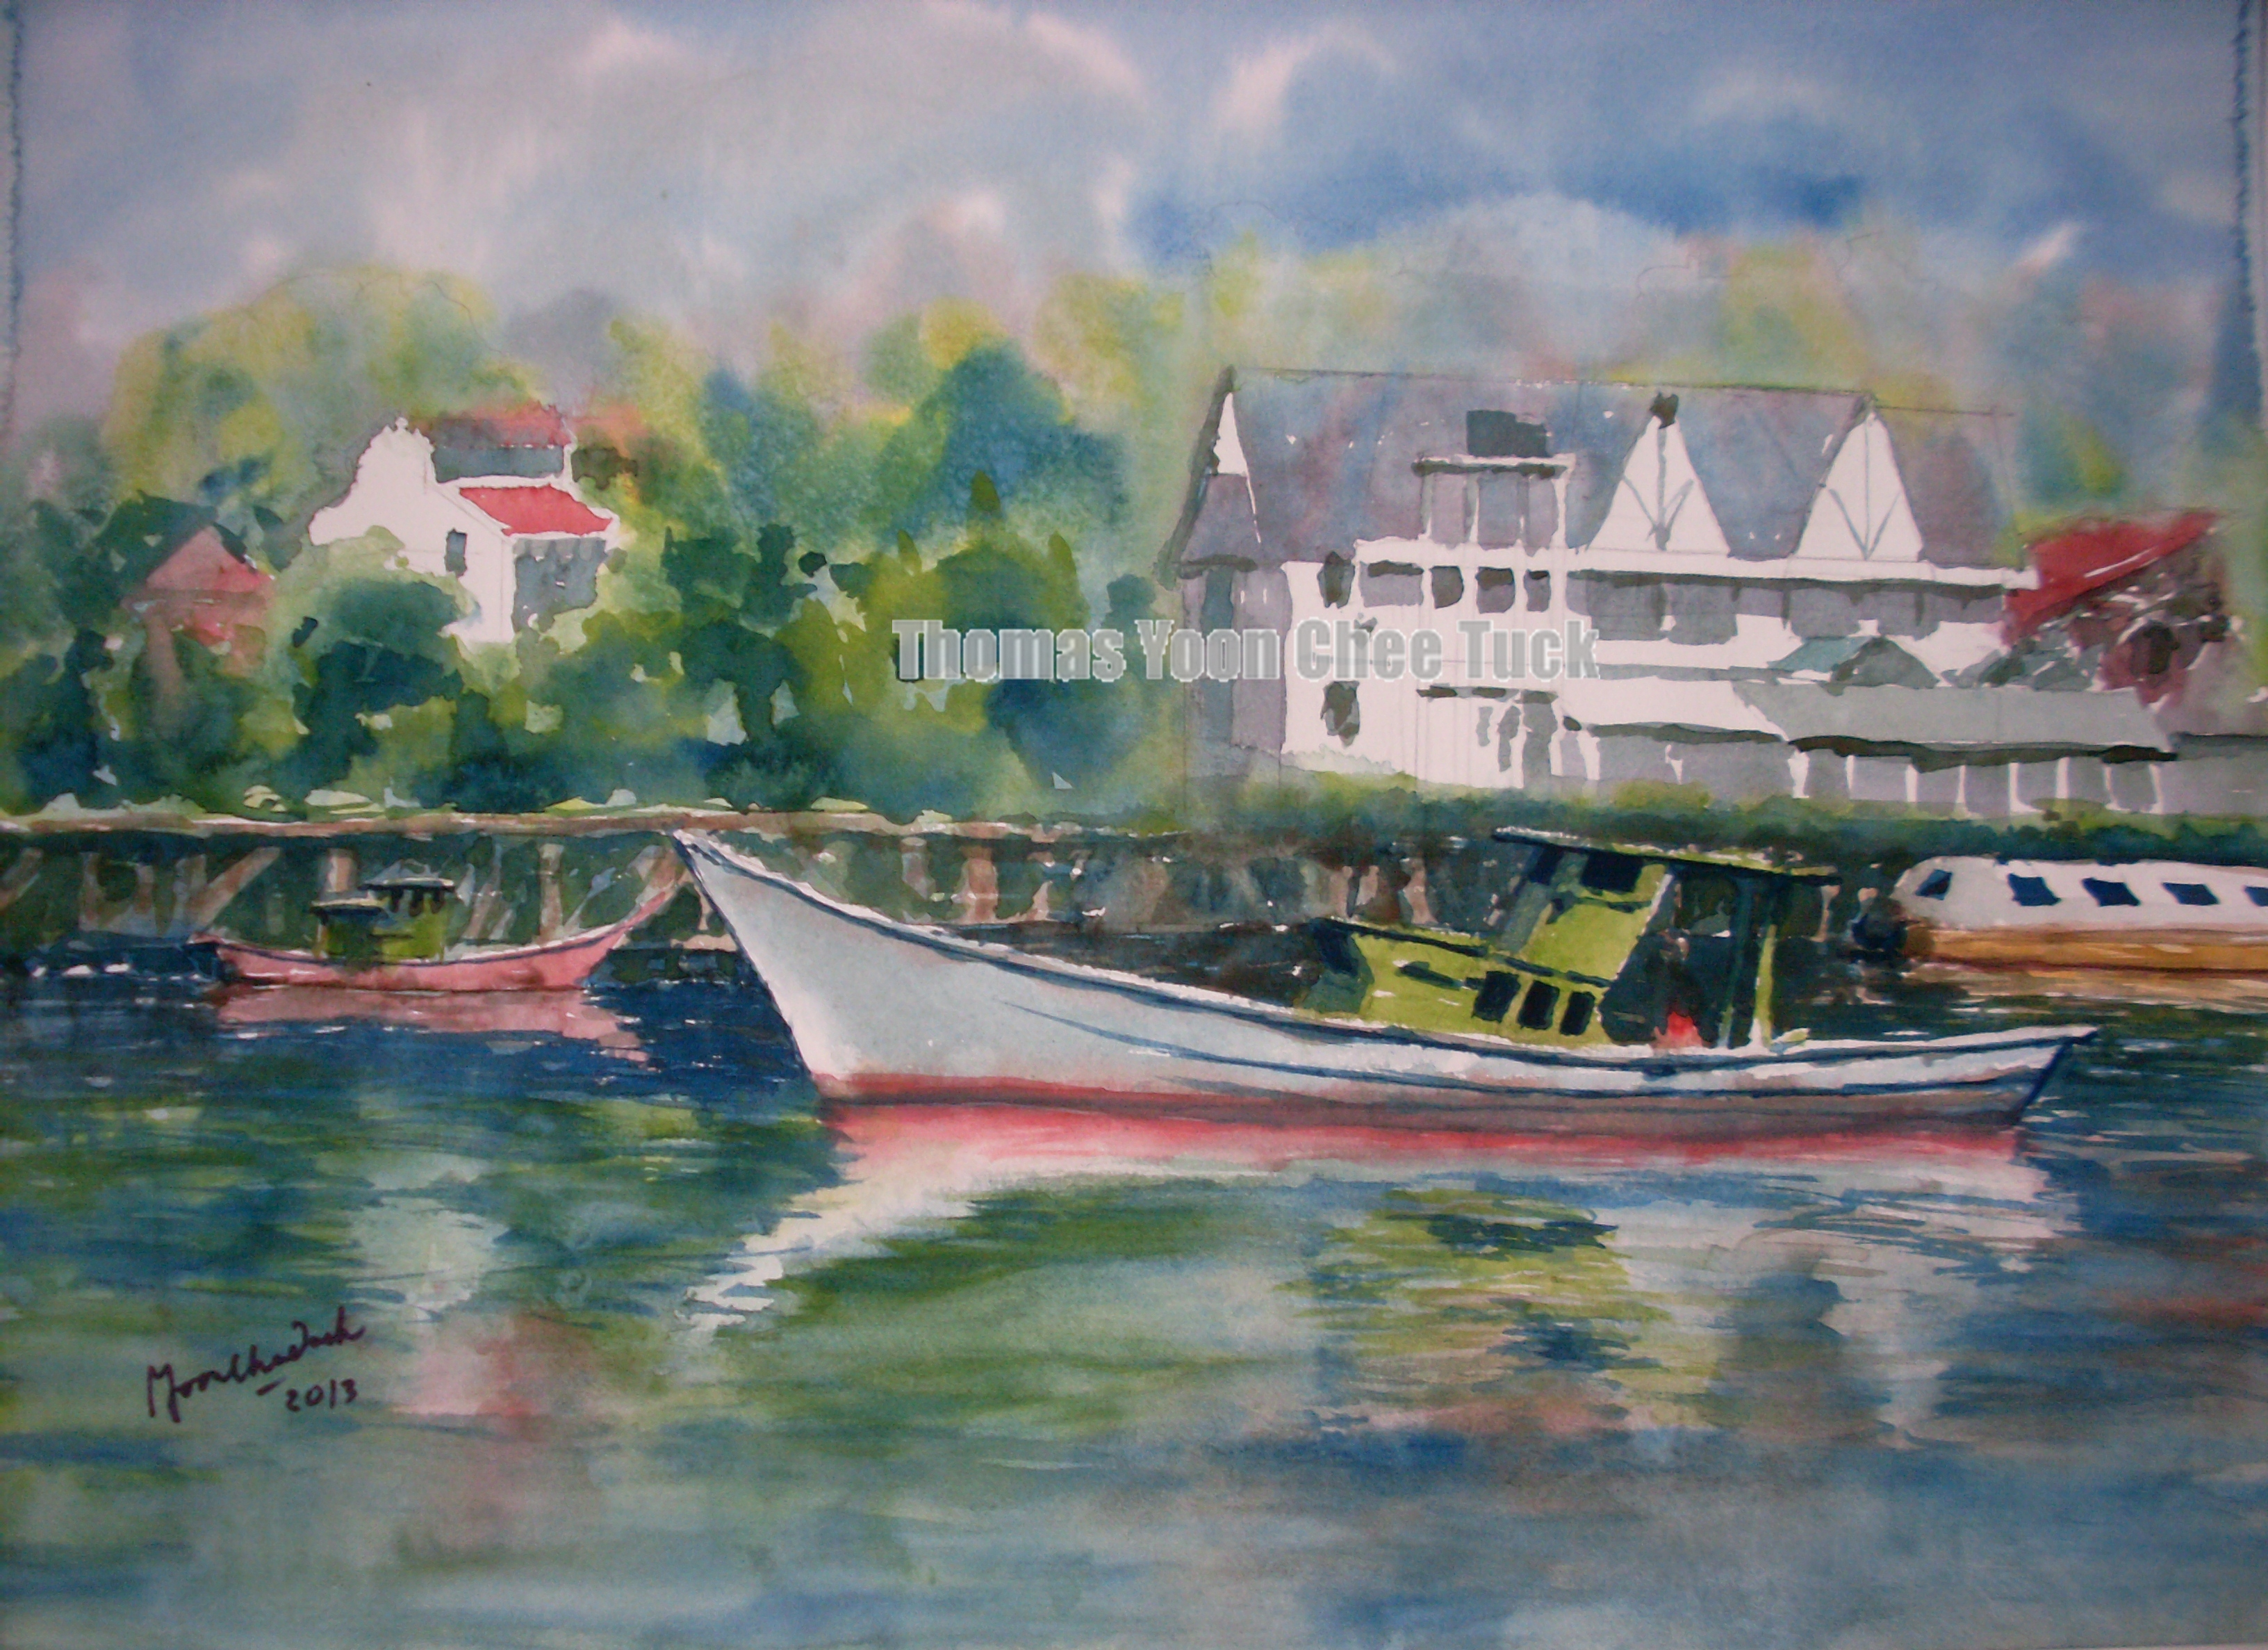 yoon chee tuck watercolor artist seascape landscape malaysia